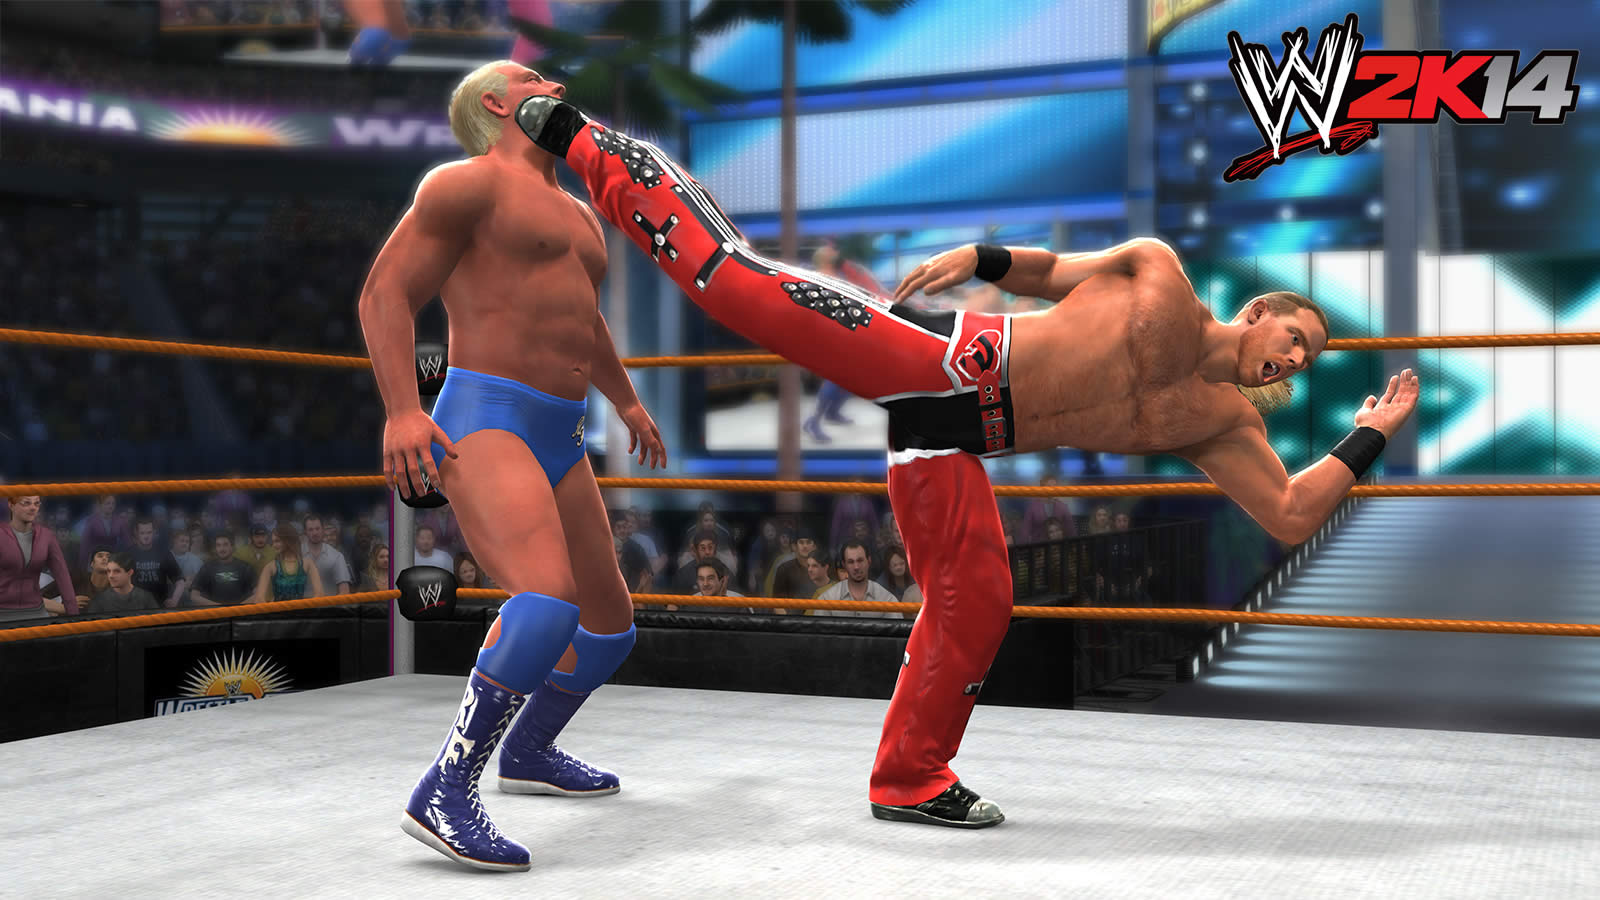 image - wwe 2k14 screenshot.61 | pro wrestling | fandom powered